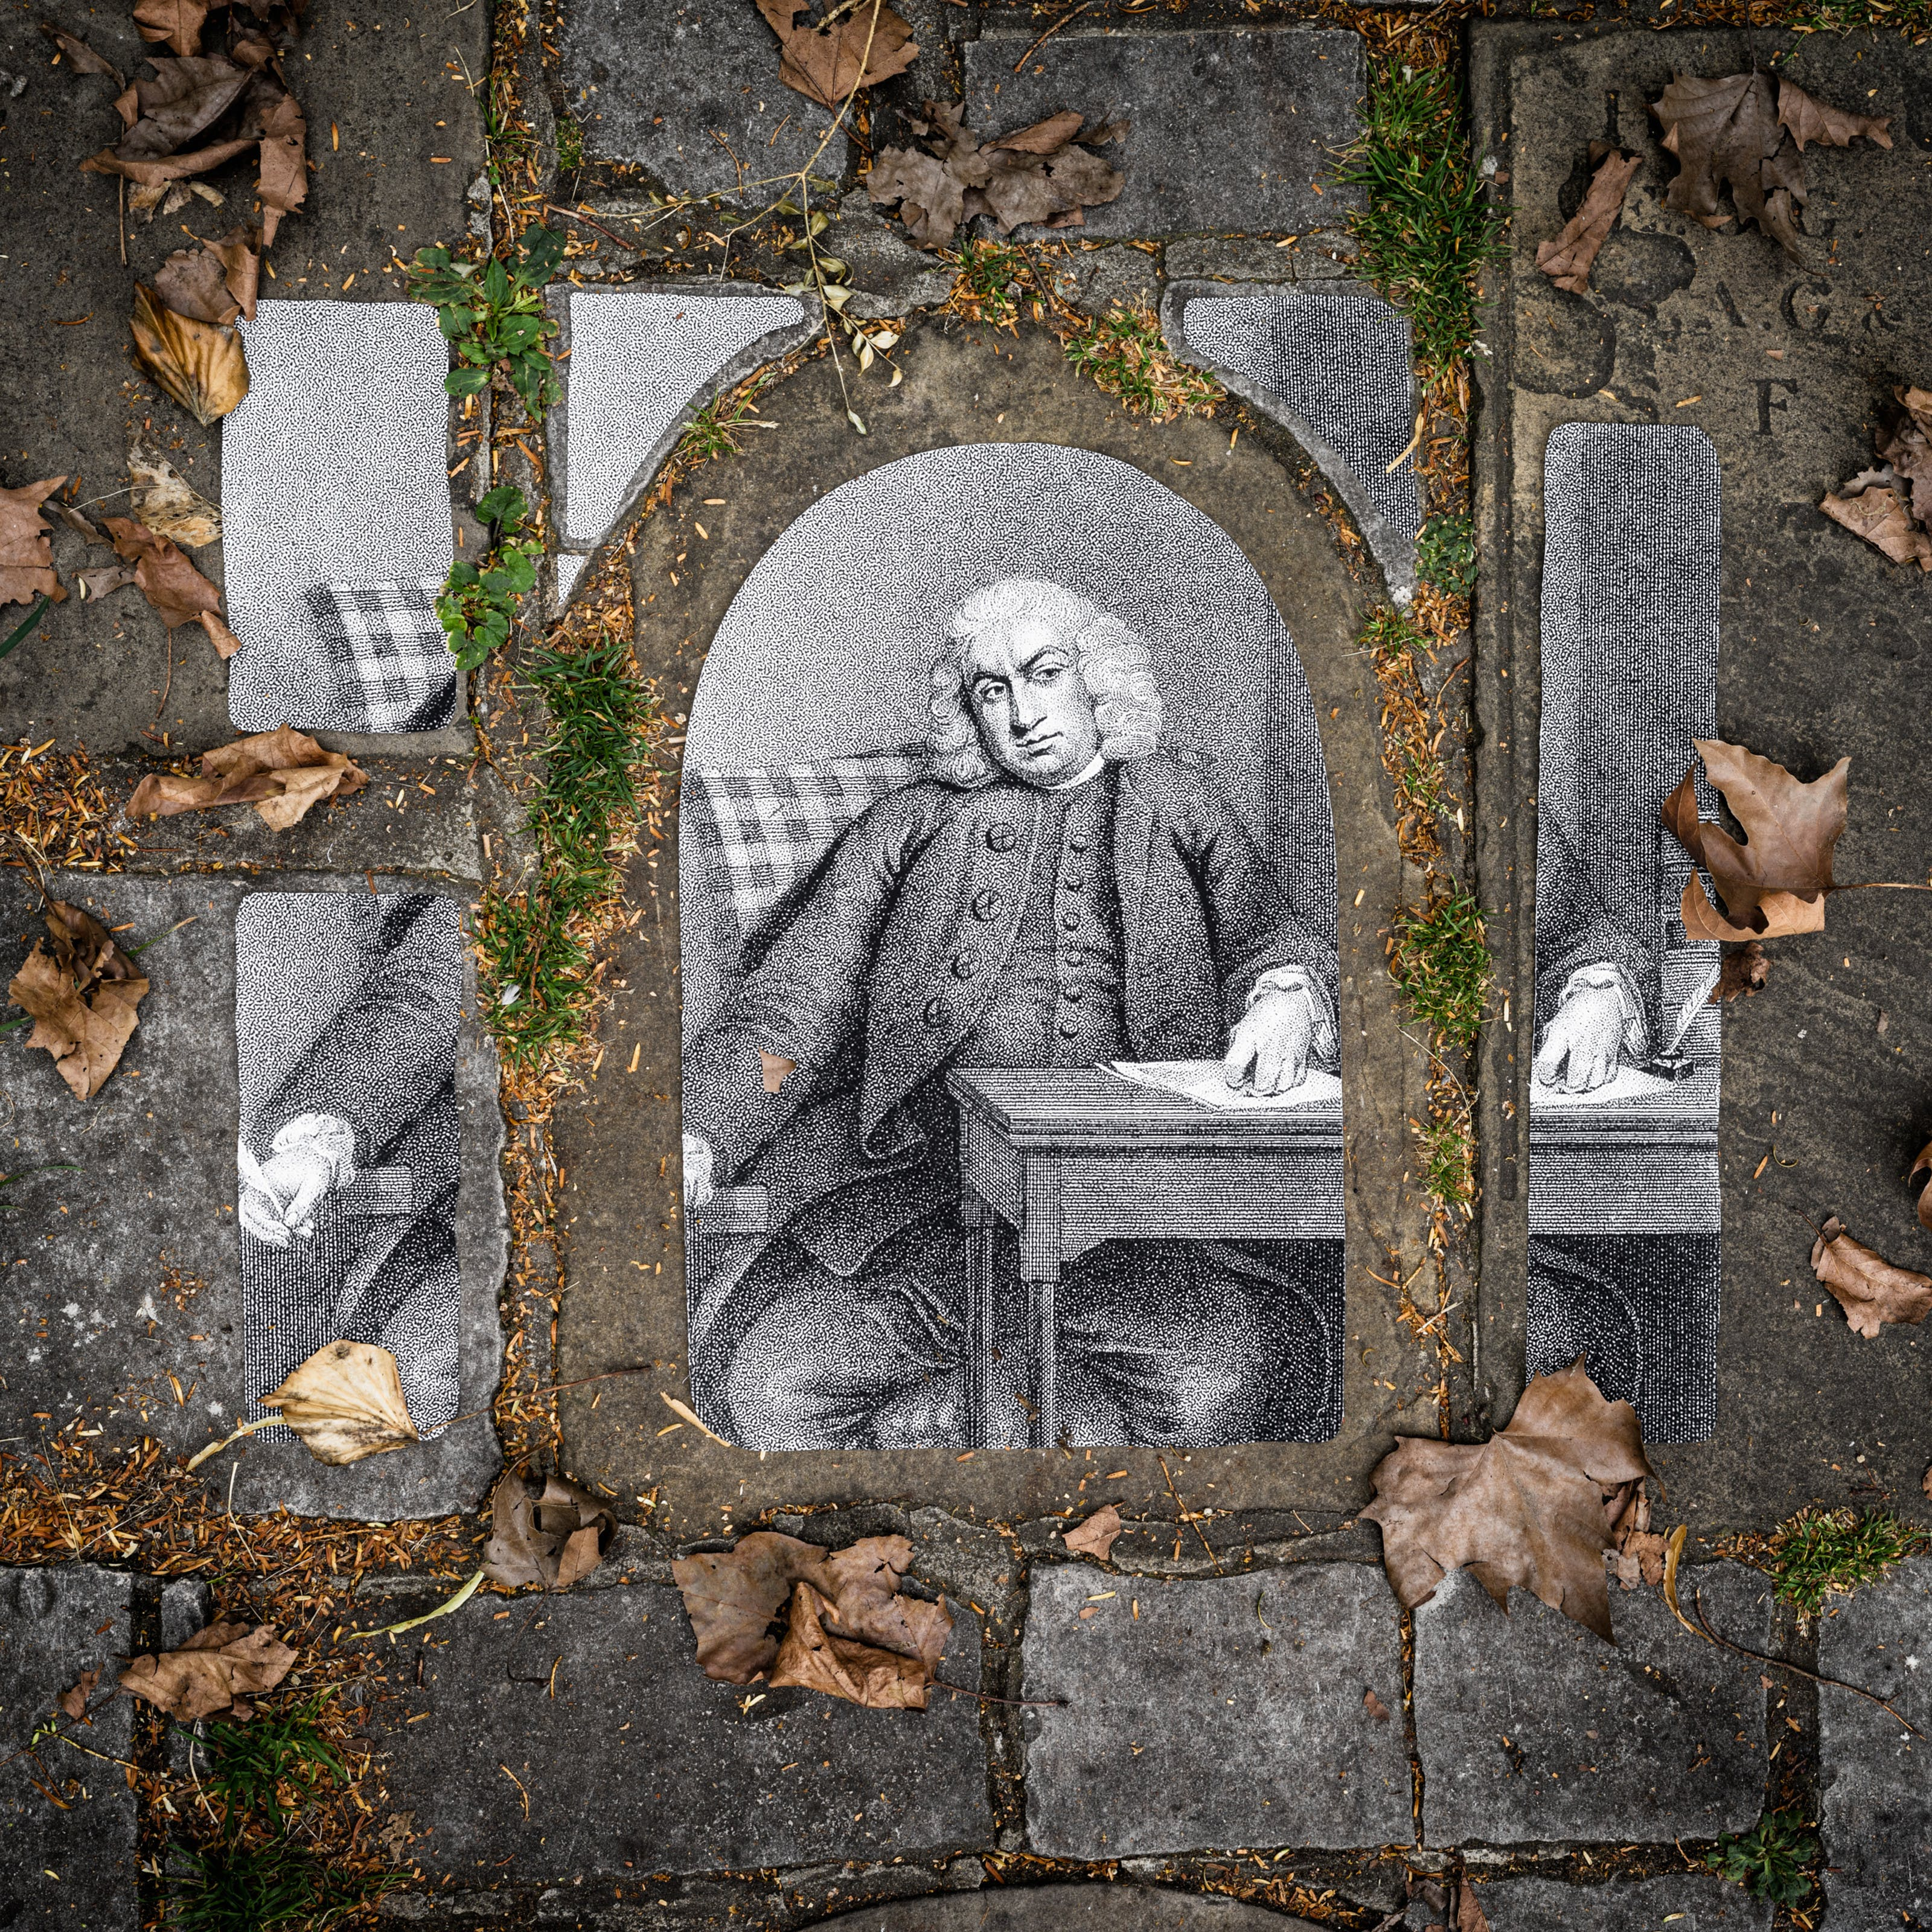 Photograph of an historical portrait drawing of Samuel Johnson placed on a path made out of paving slabs of different shapes and sizes. The portrait is cut into different shapes and sizes to match the paving stones beneath. Grass is growing between the slabs and leaves cover the ground.